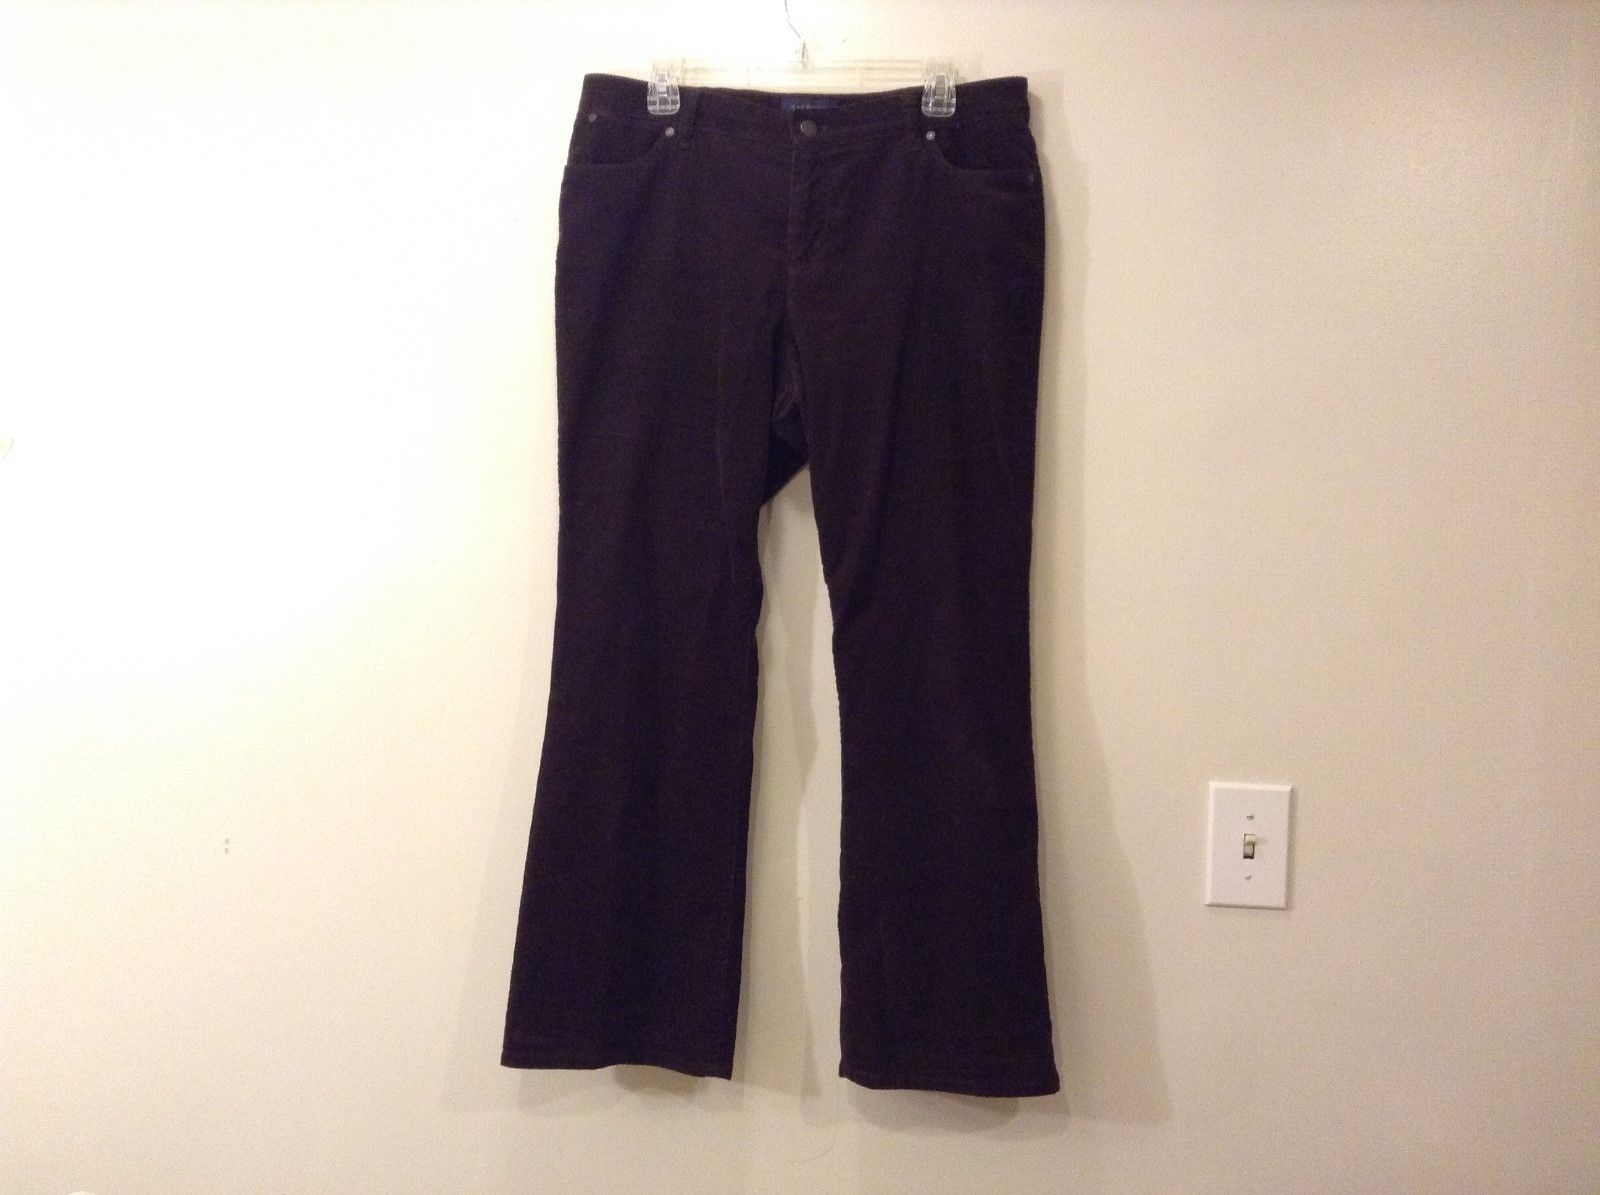 Ladies Talbots Curvy Dark Chocolate Brown Corduroy Pants Jeans Sz 14P